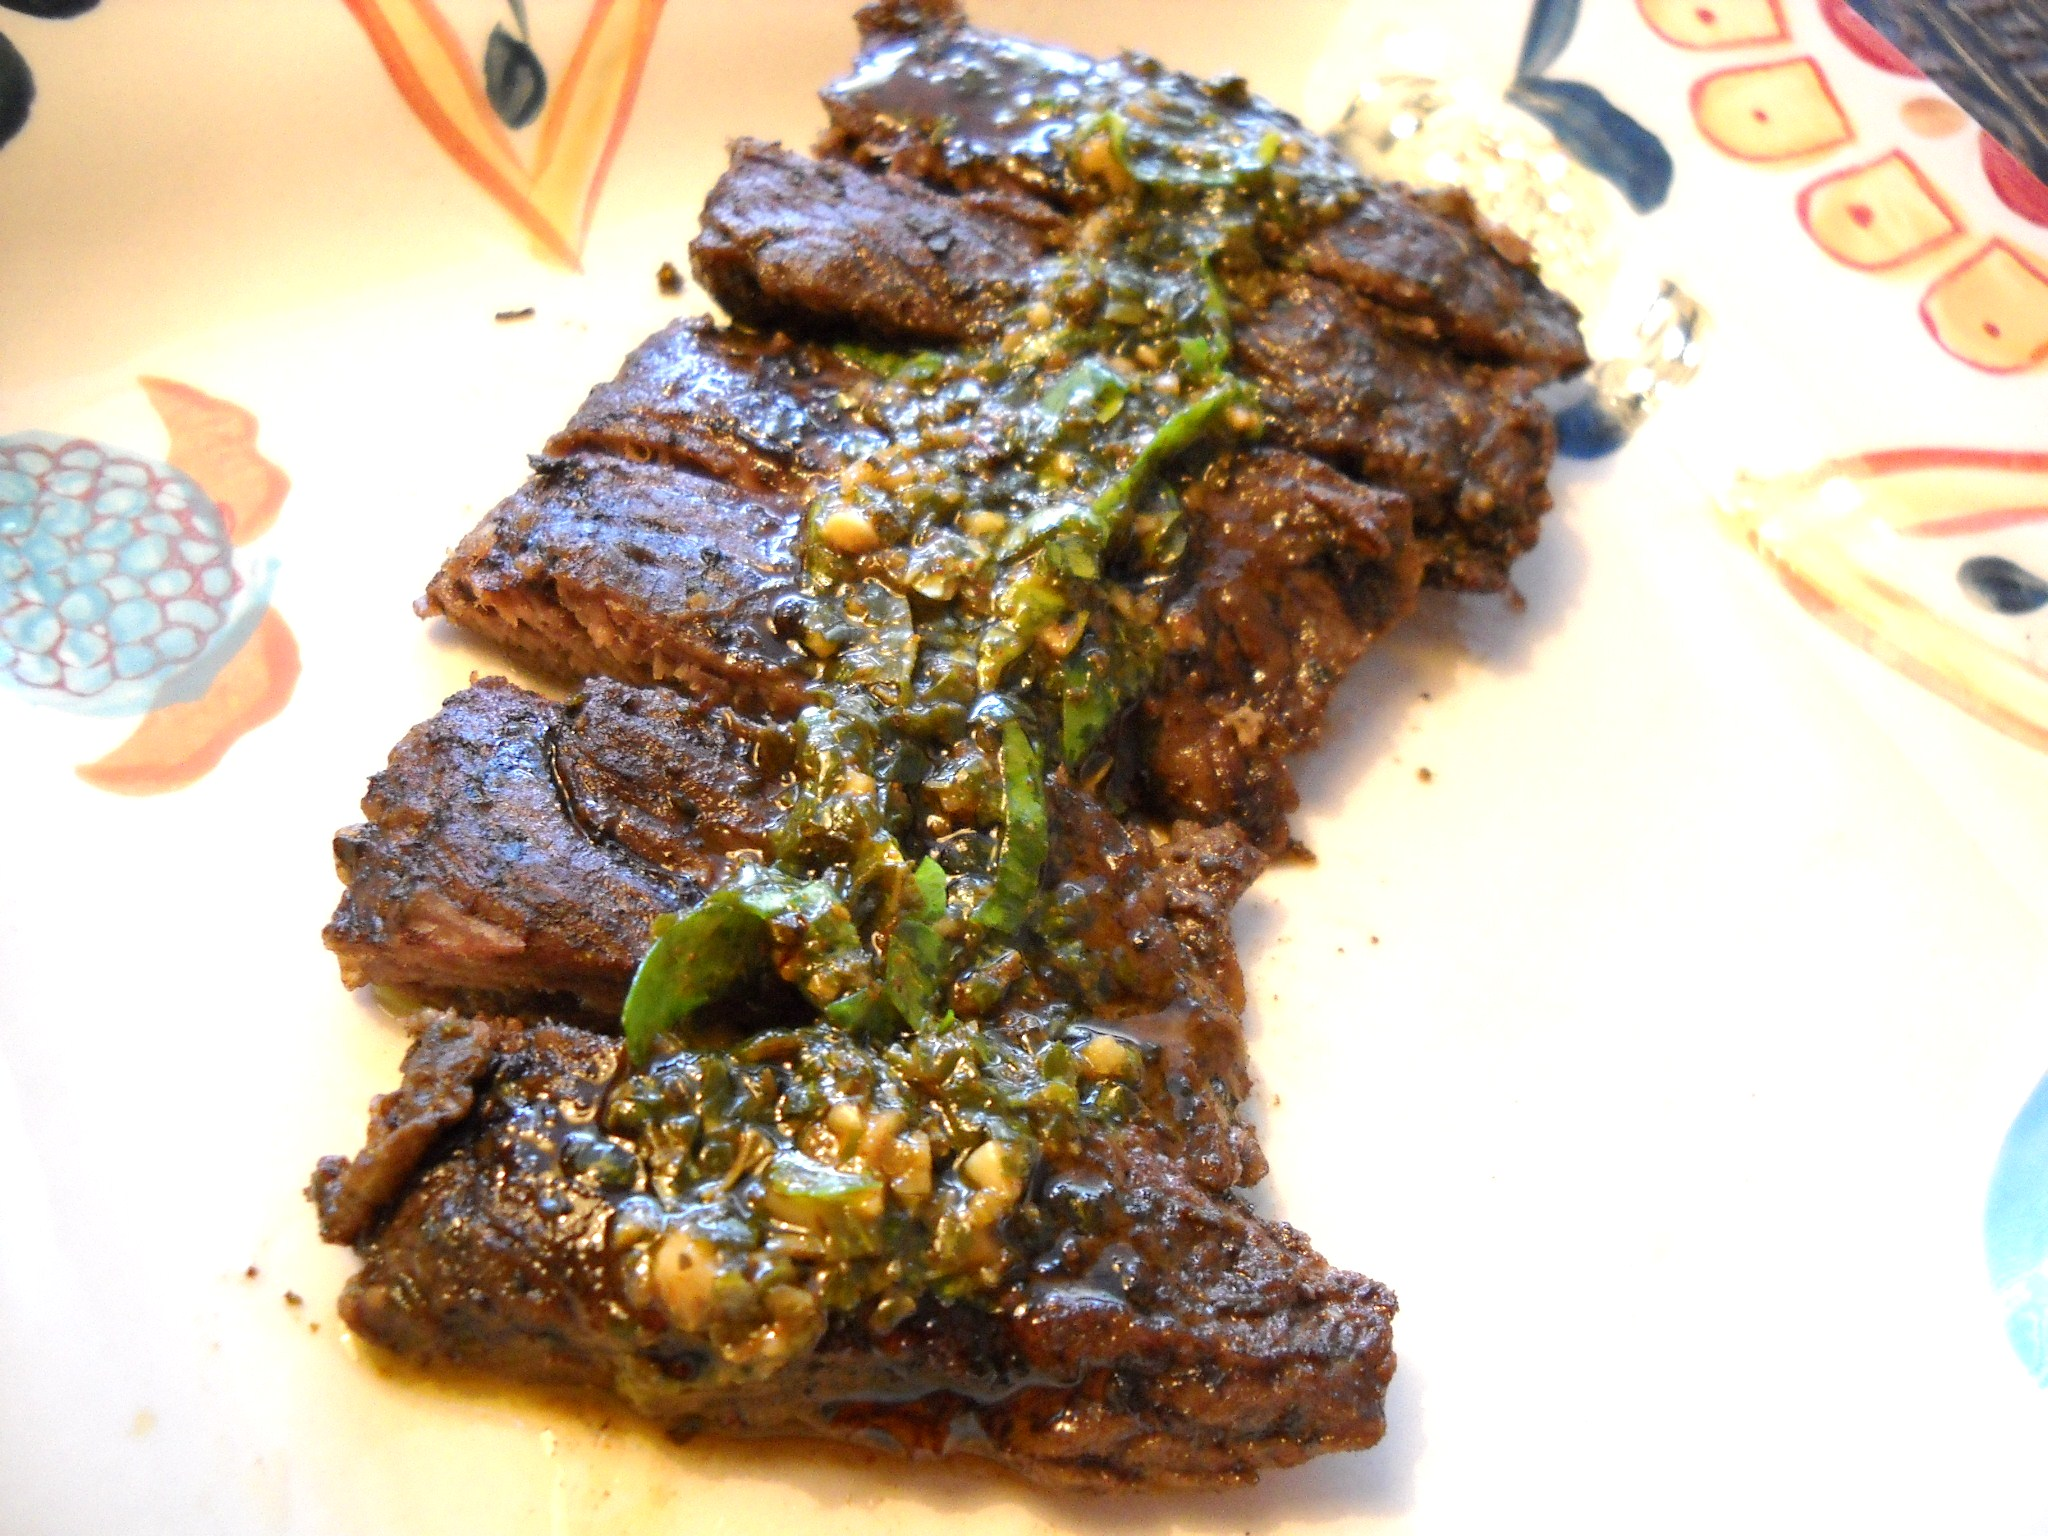 8 Classic To Creative Chimichurri Recipes For Your Next Party as well Standardtacos further 30752 besides 6665 besides 5956. on steak with chimichurri sauce